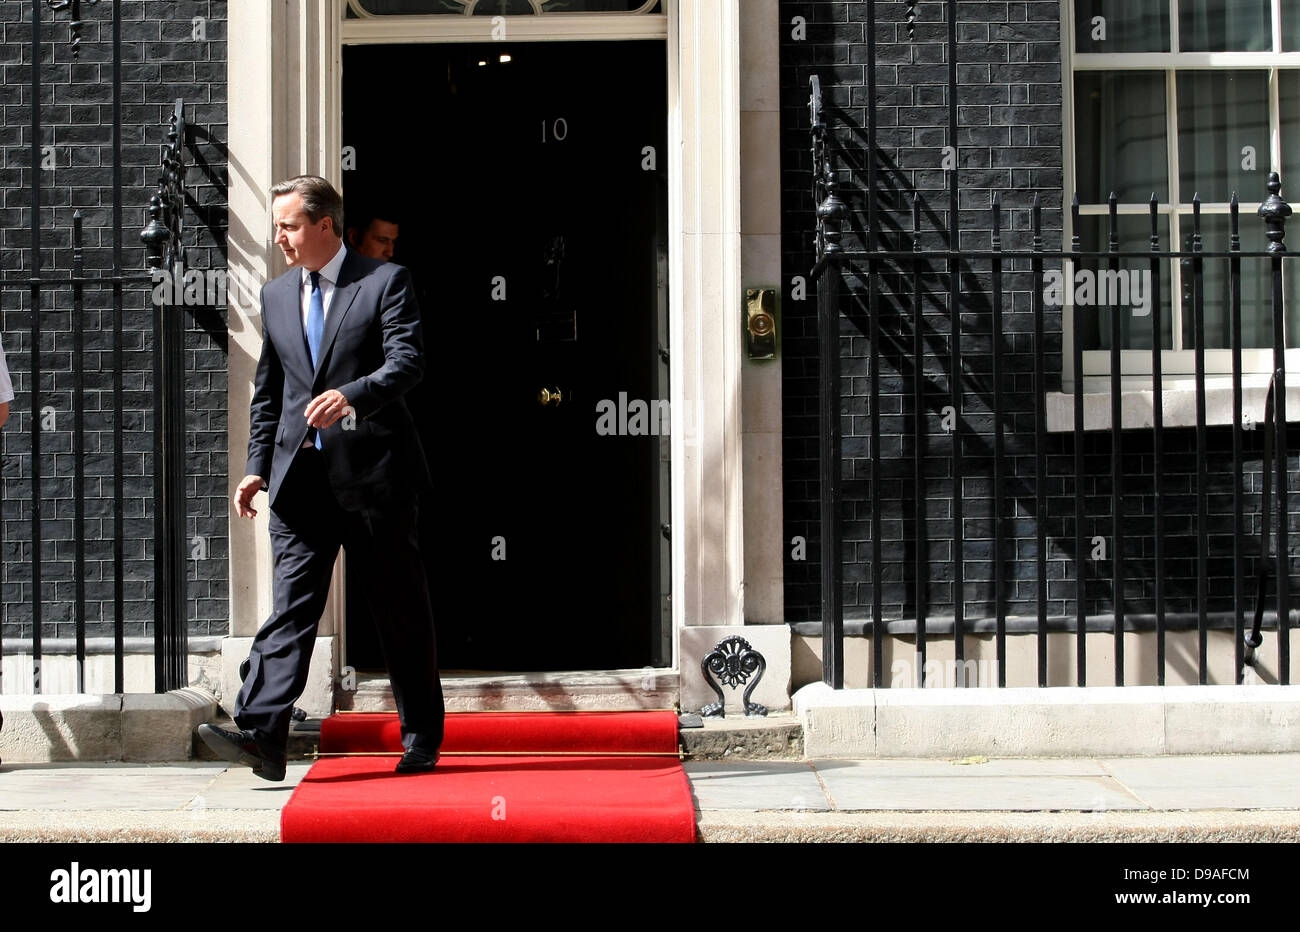 DAVID CAMERON BRITISH PRIME MINISTER GOES TO 16 June 2013 10 DOWNING STREET  LONDON ENGLAND Stock Photo